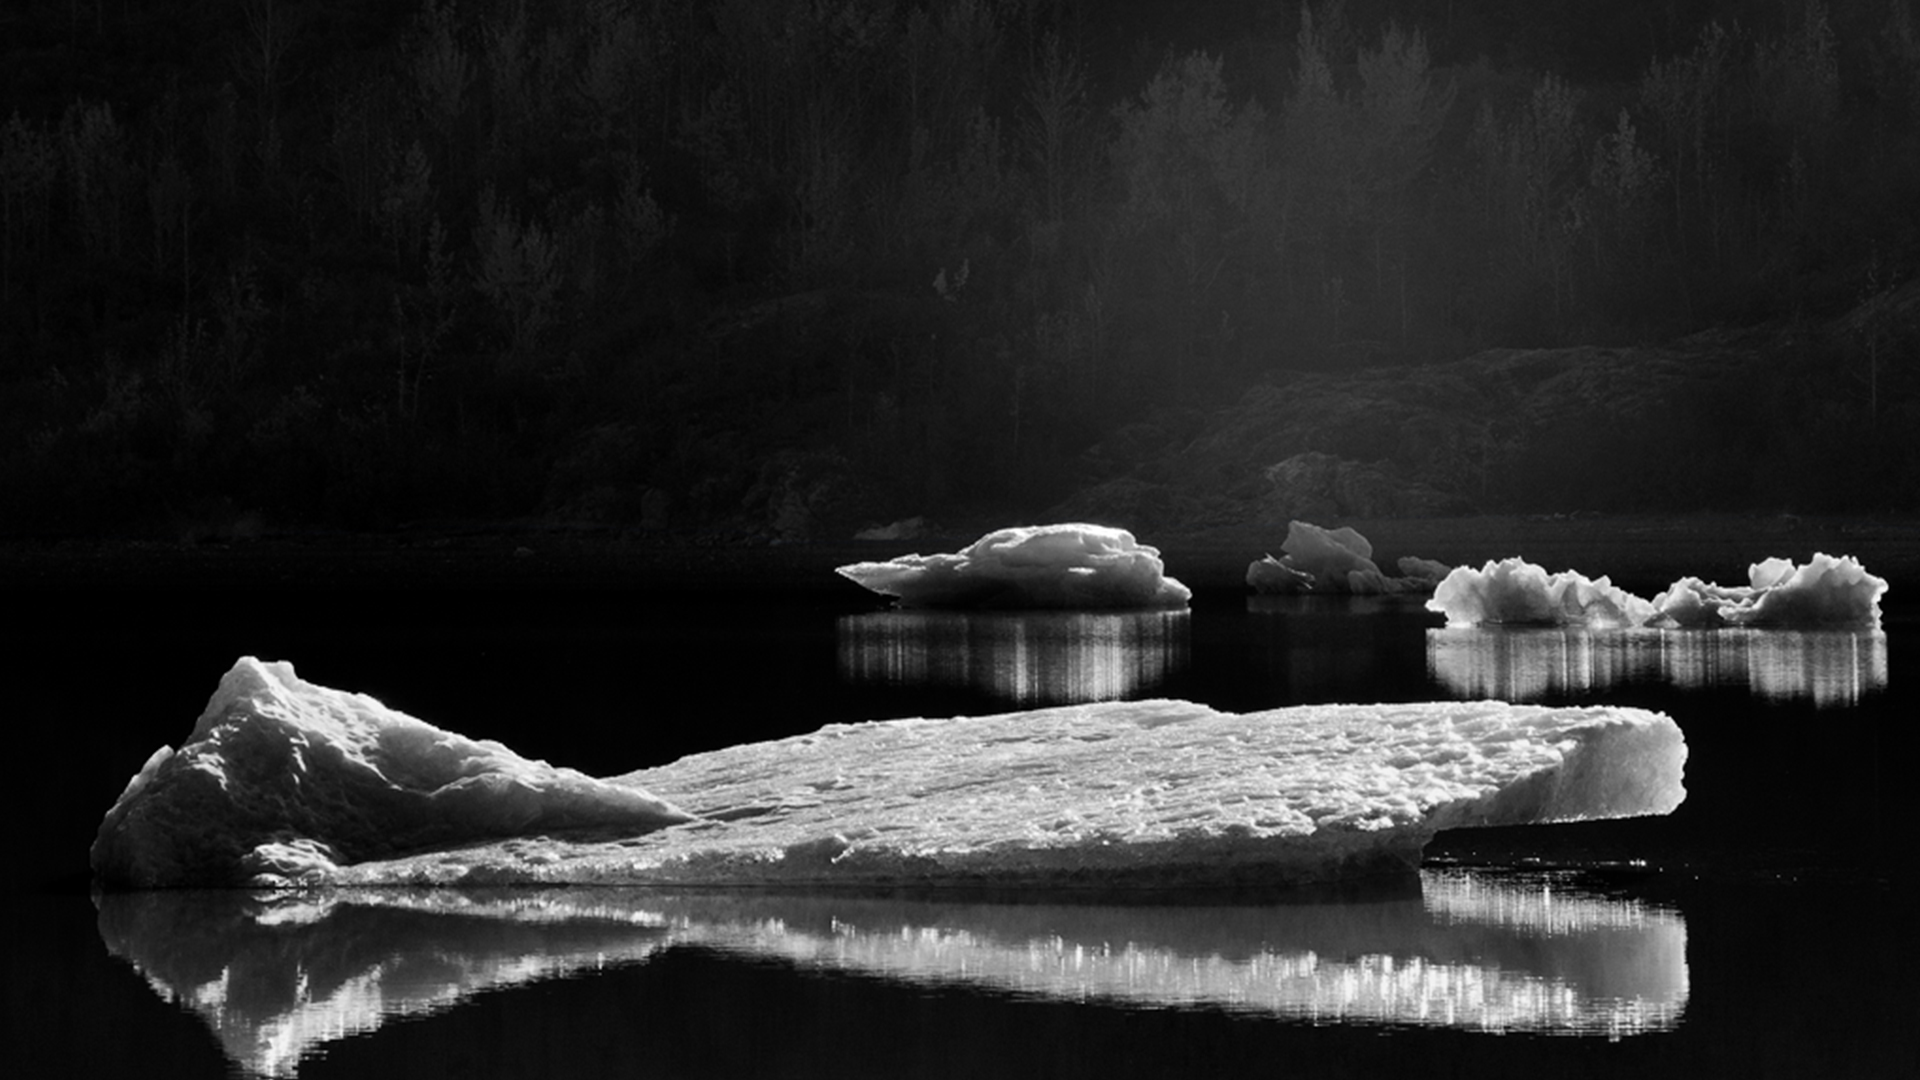 Creating black and white landscape photos with photoshop